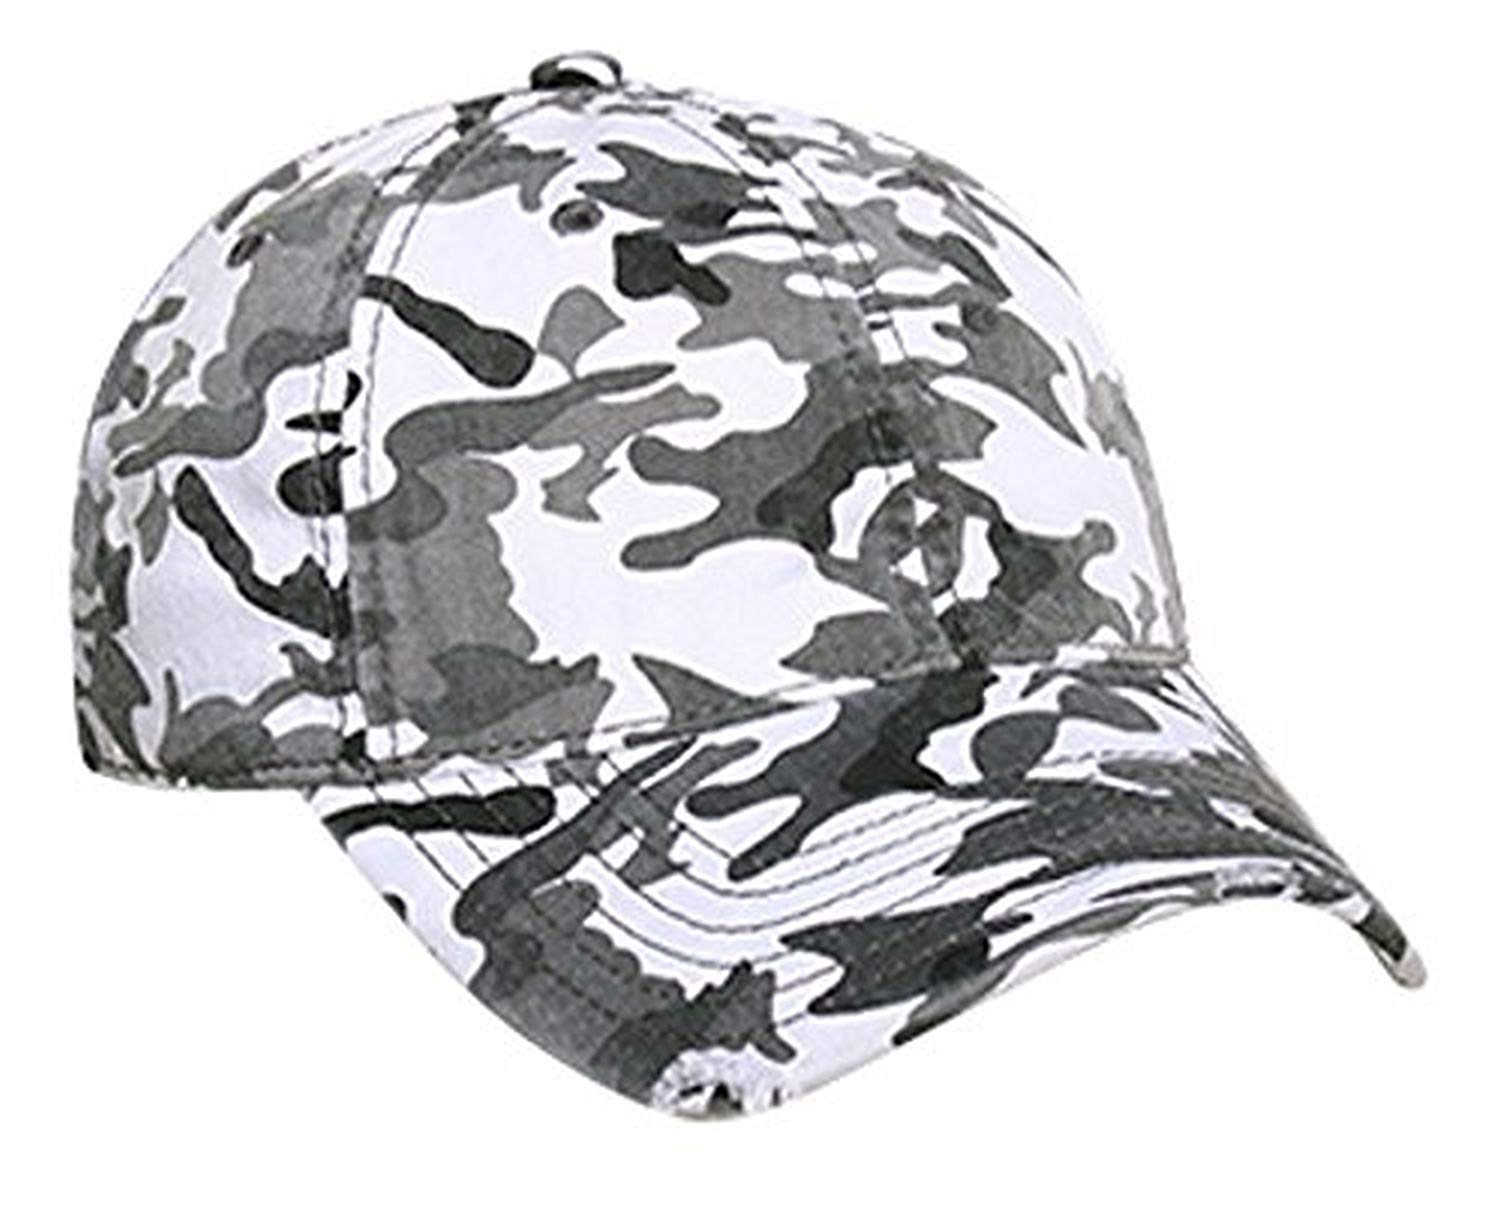 Hats & Caps Shop Camouflage Superior Garment Washed Cn Twill Distressed Visor - By TheTargetBuys